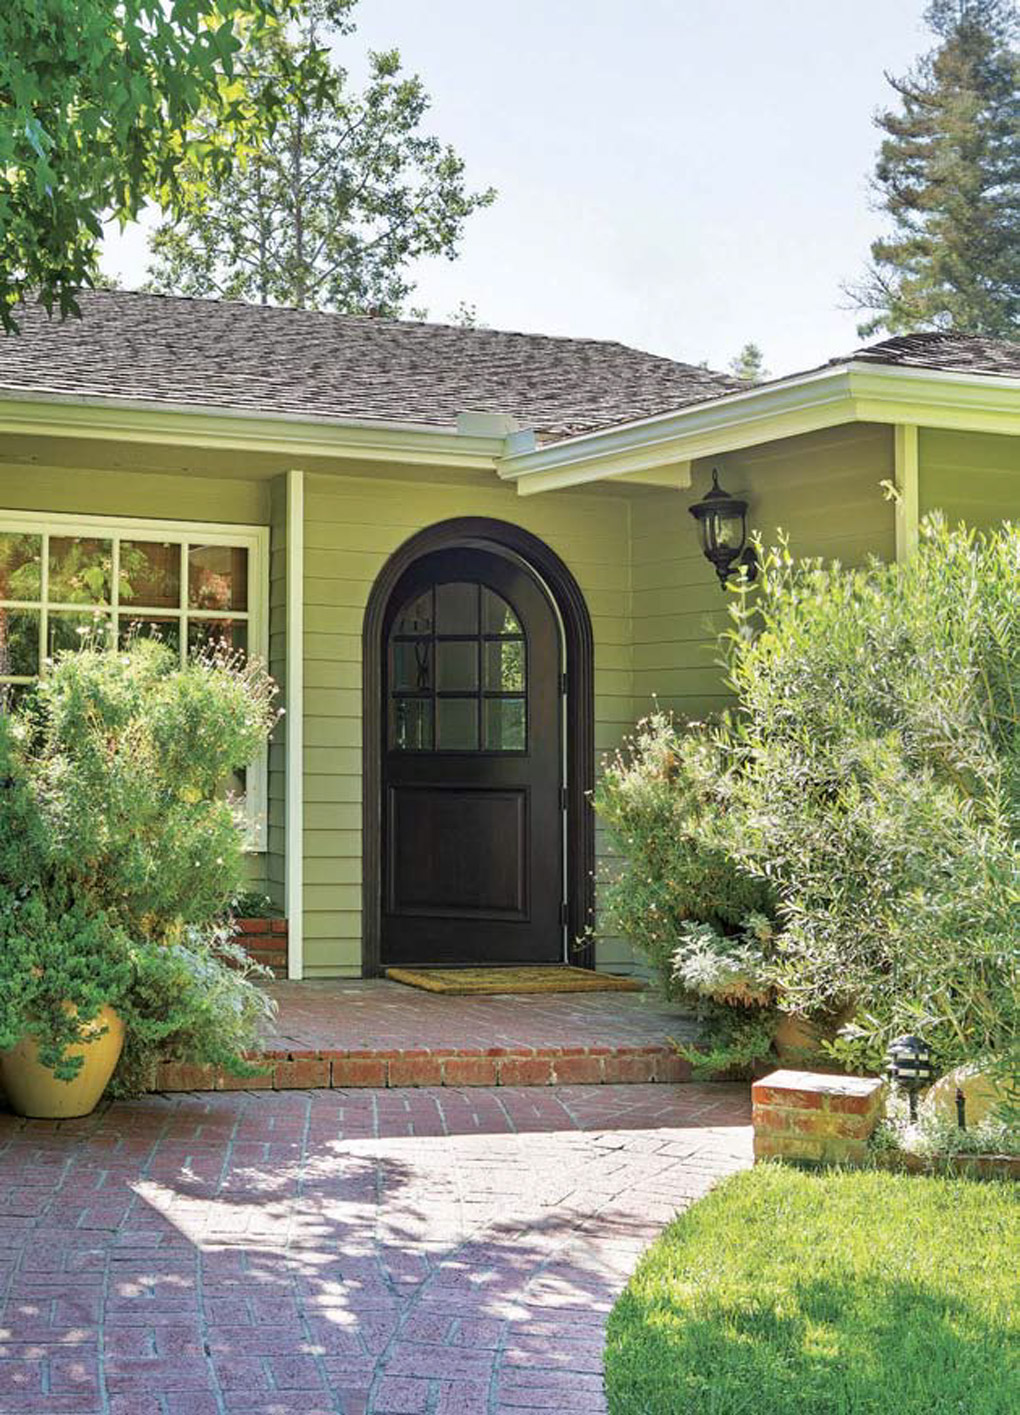 Brick paved front walkway up to a green home with an open rounded black front door.